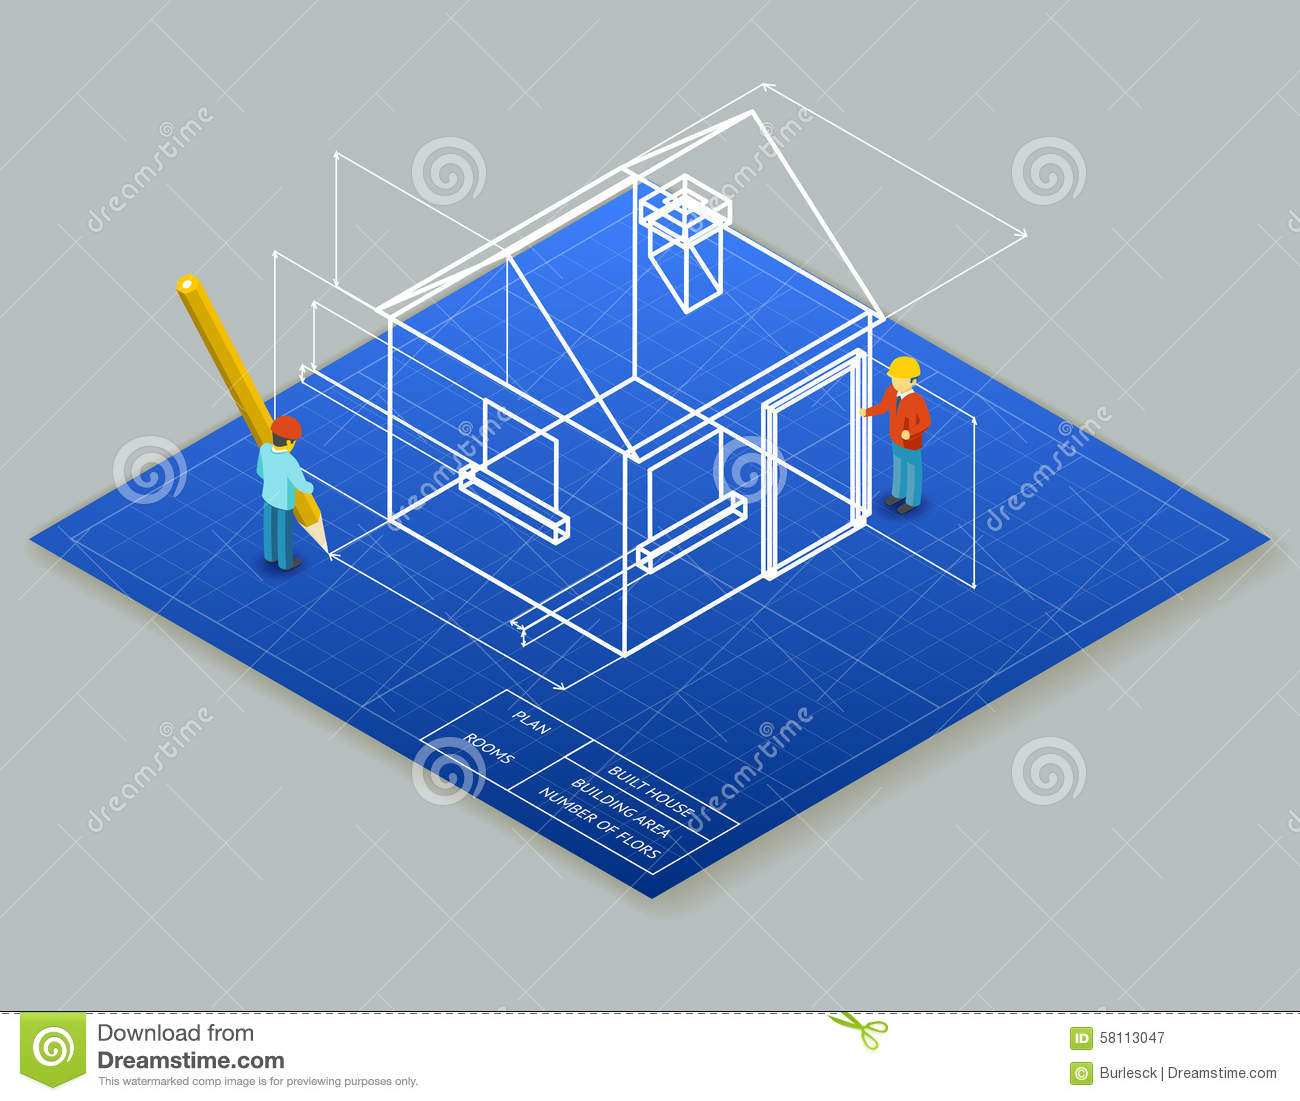 Architectural design blueprint drawing 3d stock vector for House blueprint designer